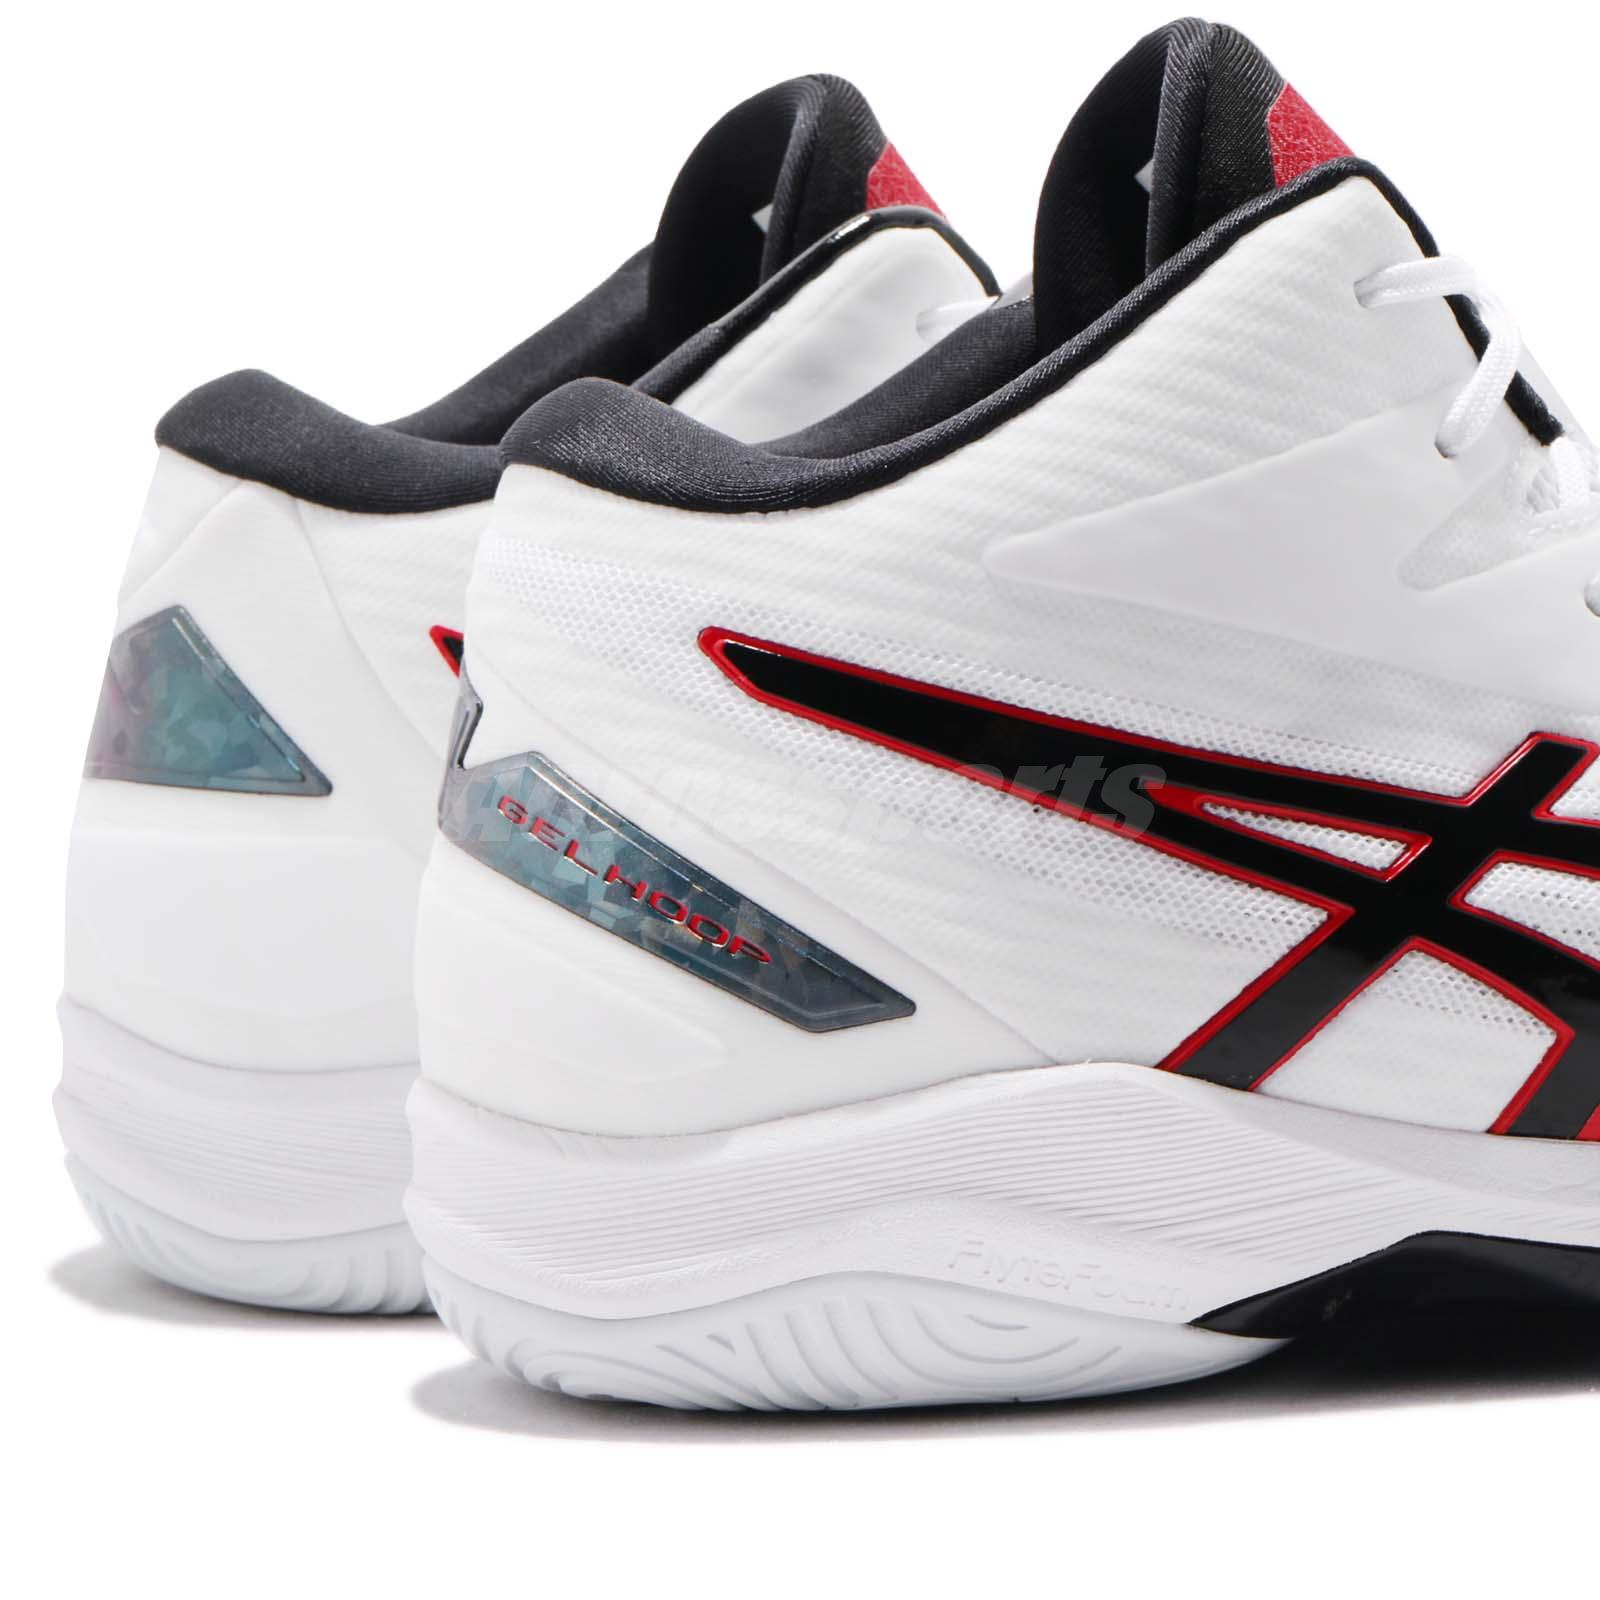 Clothing, Shoes & Accessories Asics Gelhoop V11 White Black Red Men Basketball Shoes Sneakers 1061a015-116 Athletic Shoes